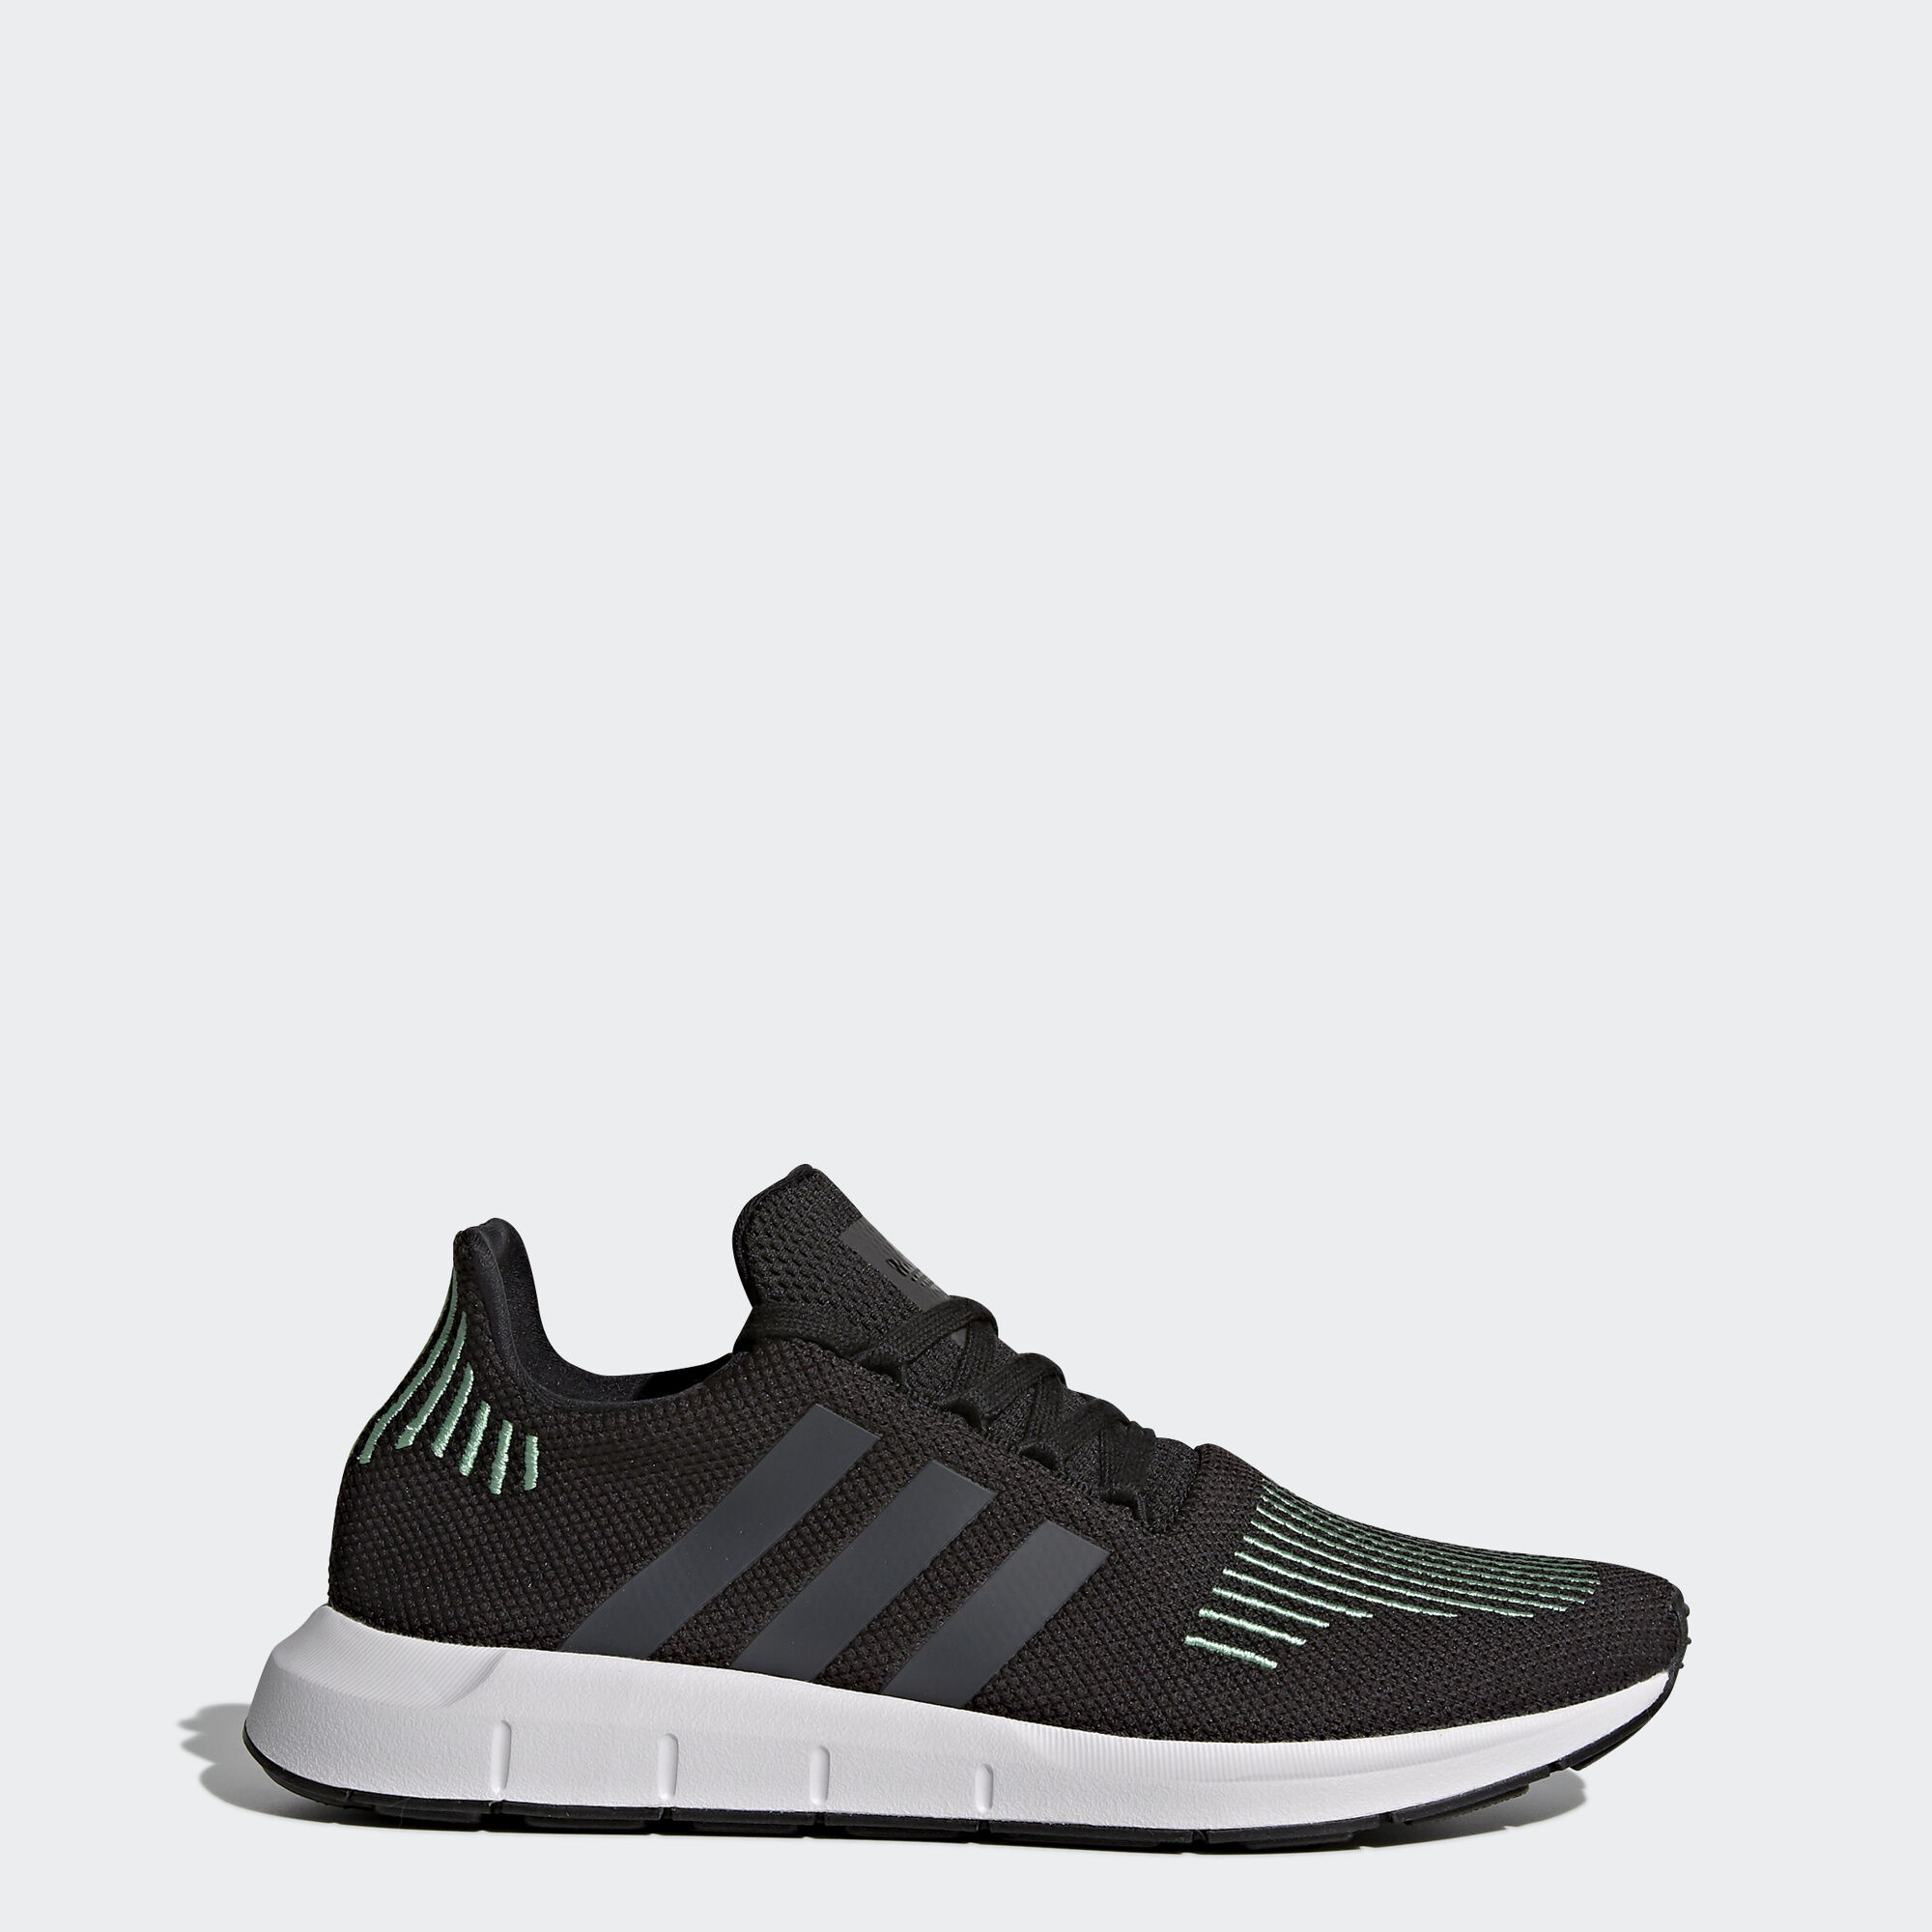 adidas swift run shoes black adidas regional. Black Bedroom Furniture Sets. Home Design Ideas